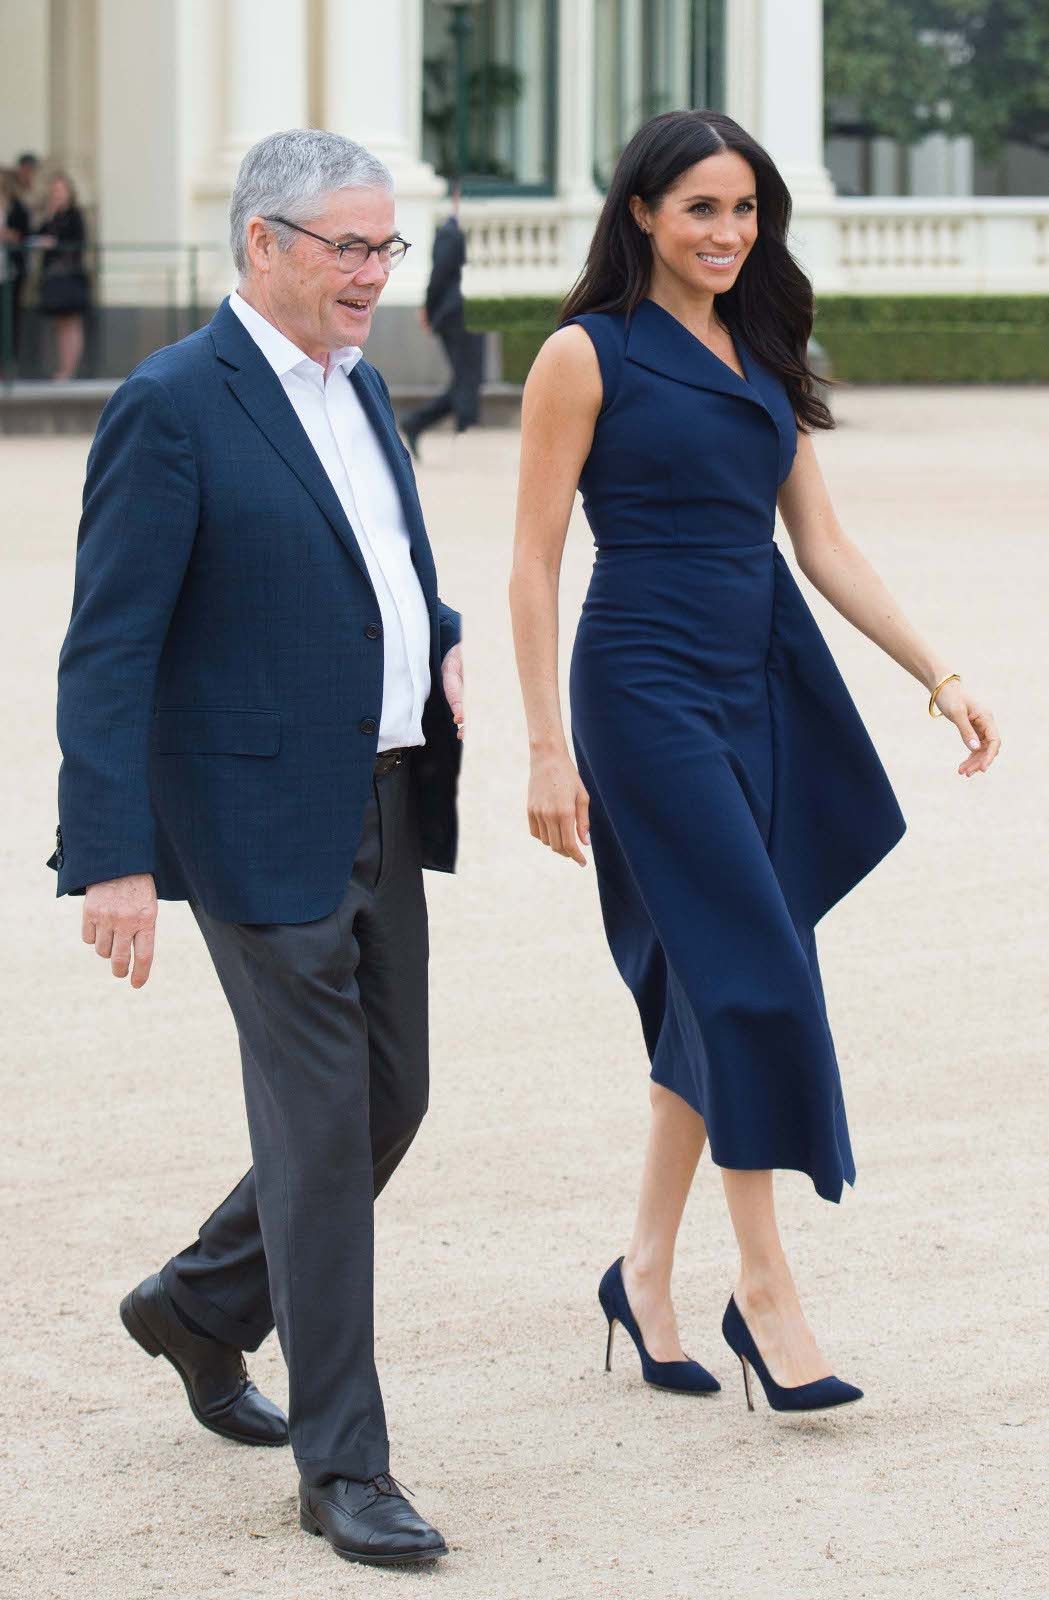 Prince Harry, the Duke of Sussex and Meghan, the Duchess of Sussex attend a Reception hosted by the Honourable Linda Dessau AC, Governor of Victoria and Mr. Anthony Howard QC at Government House Victoria in Melbourne.  Dress ? Dion Lee Shoes ? Manolo Blahnik BB stilettos ?556  Pictured: Meghan,the Duchess of Sussex and Anthony Howard Ref: SPL5034243 181018 NON-EXCLUSIVE Picture by: SplashNews.com  Splash News and Pictures Los Angeles: 310-821-2666 New York: 212-619-2666 London: 0207 644 7656 Milan: 02 4399 8577 photodesk@splashnews.com  World Rights